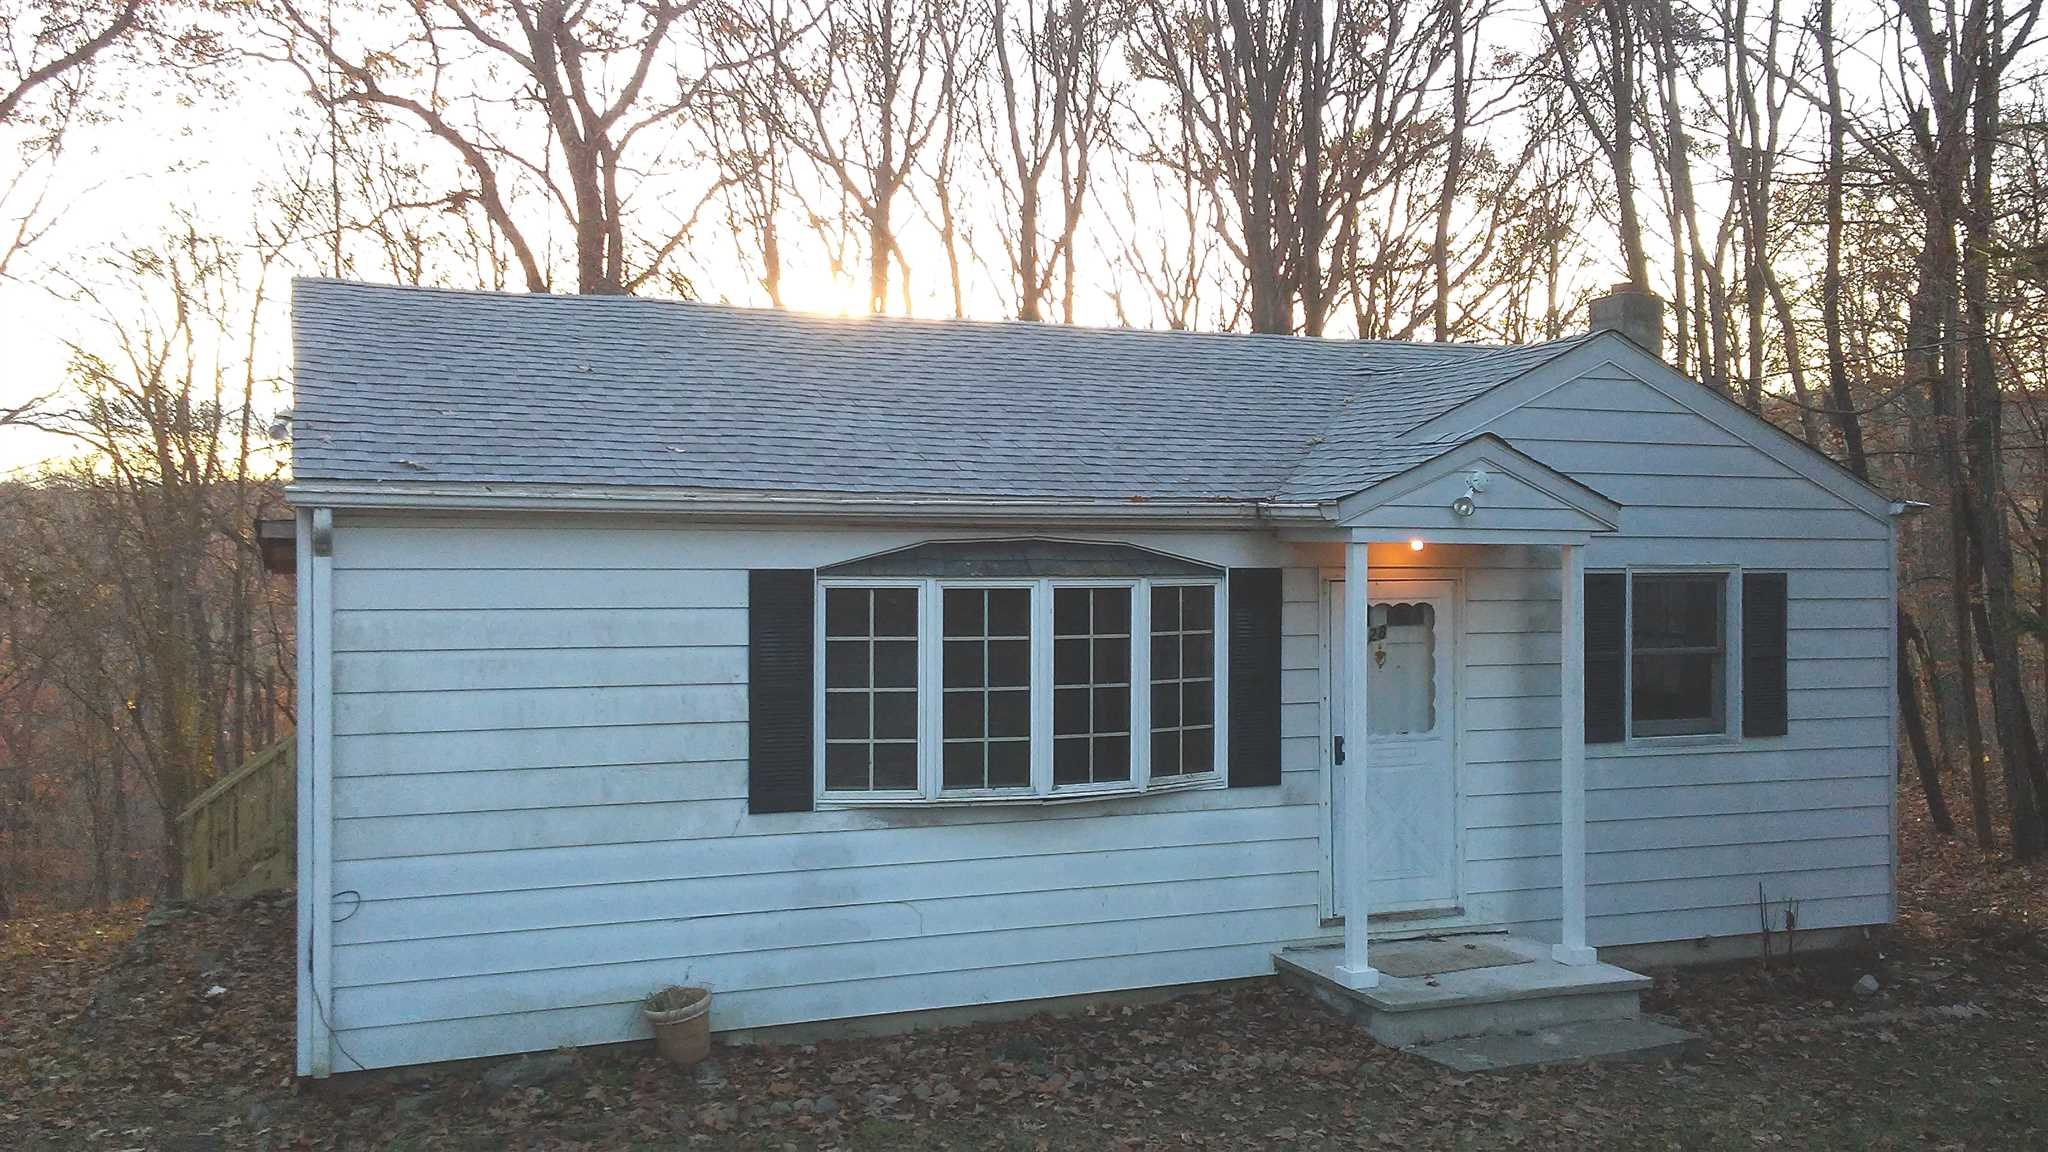 Single Family Home for Sale at 28 BIRCH TER 28 BIRCH TER Dover Plains, New York 12564 United States